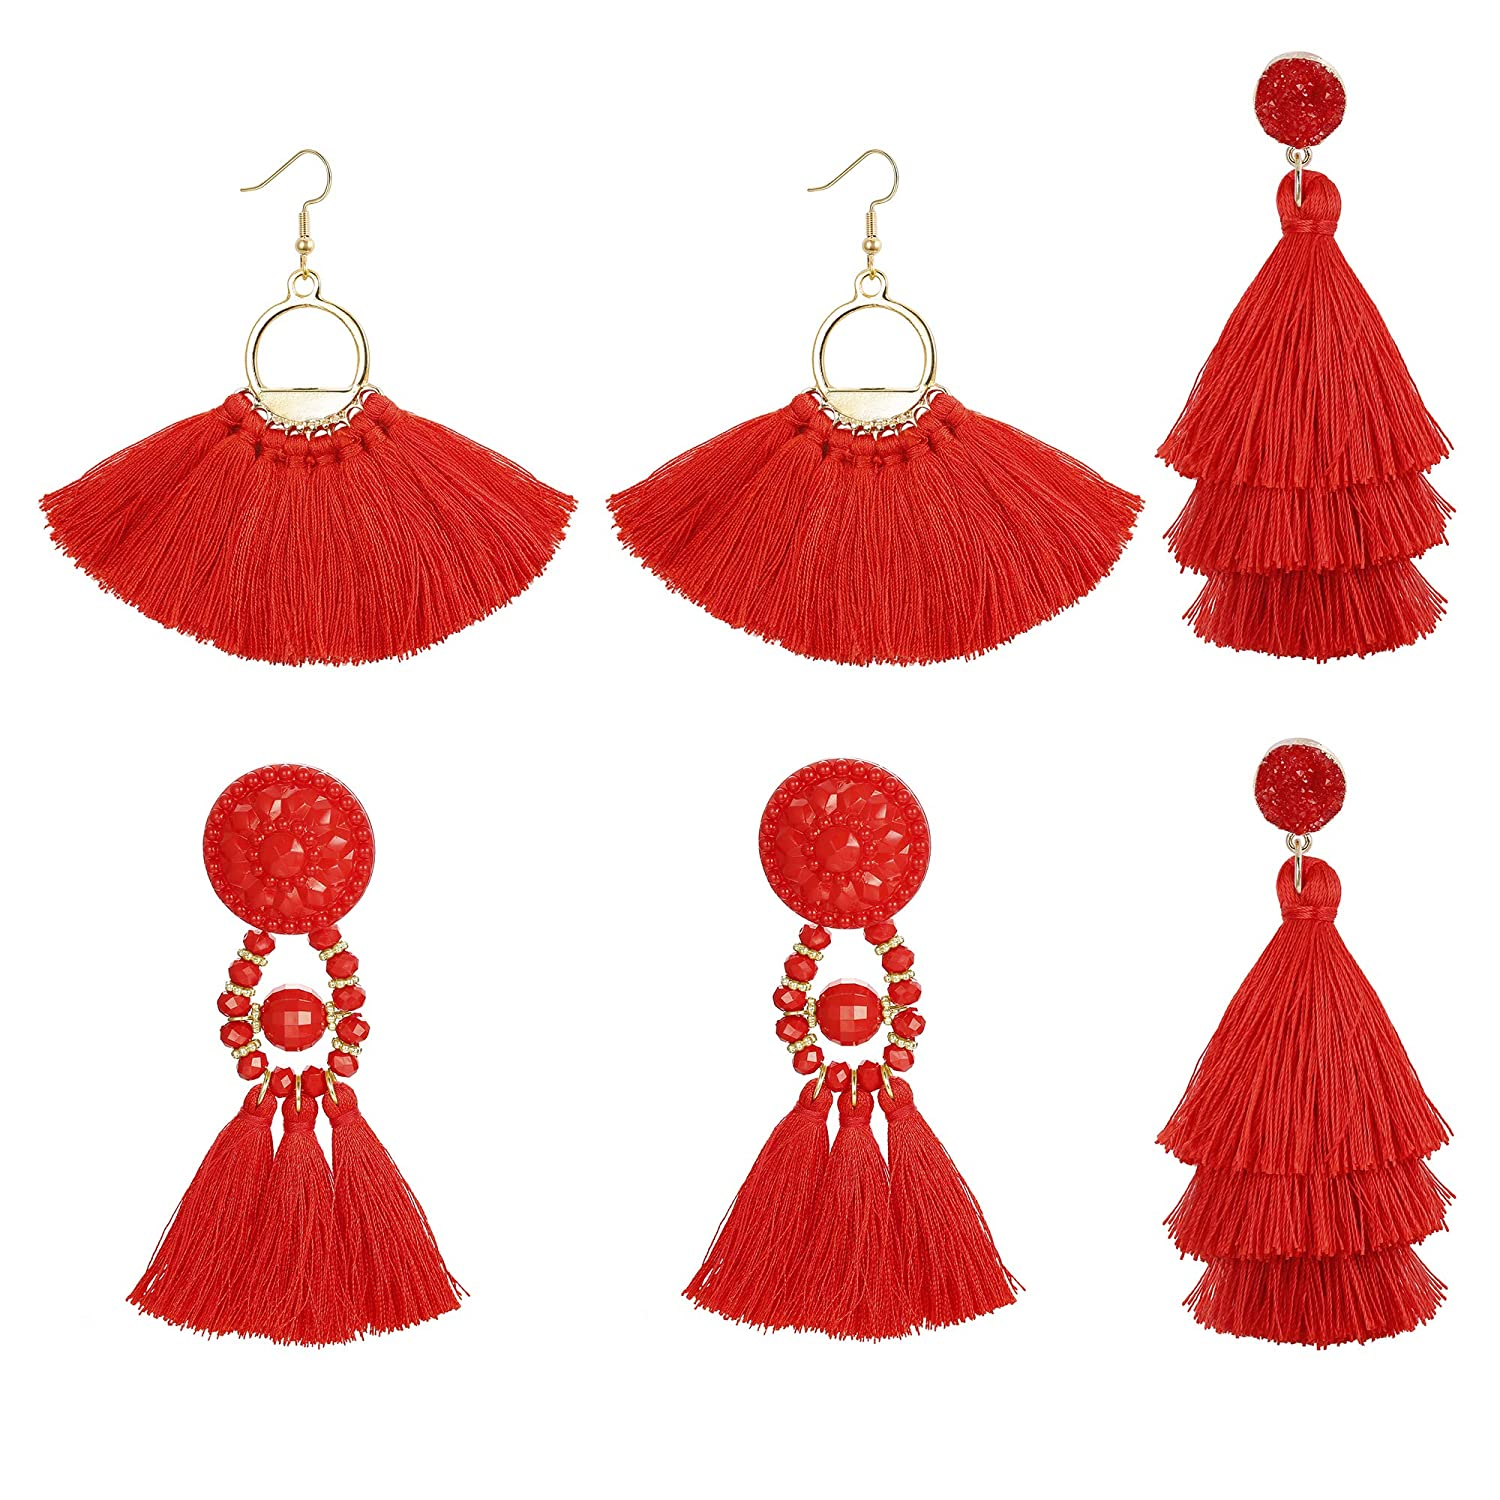 LOLIAS 3 Pairs Long Thread Tassel Earrings for Women Girls Fashion Dangle Drop Earrings Blue L-EAH-TE-BLUE